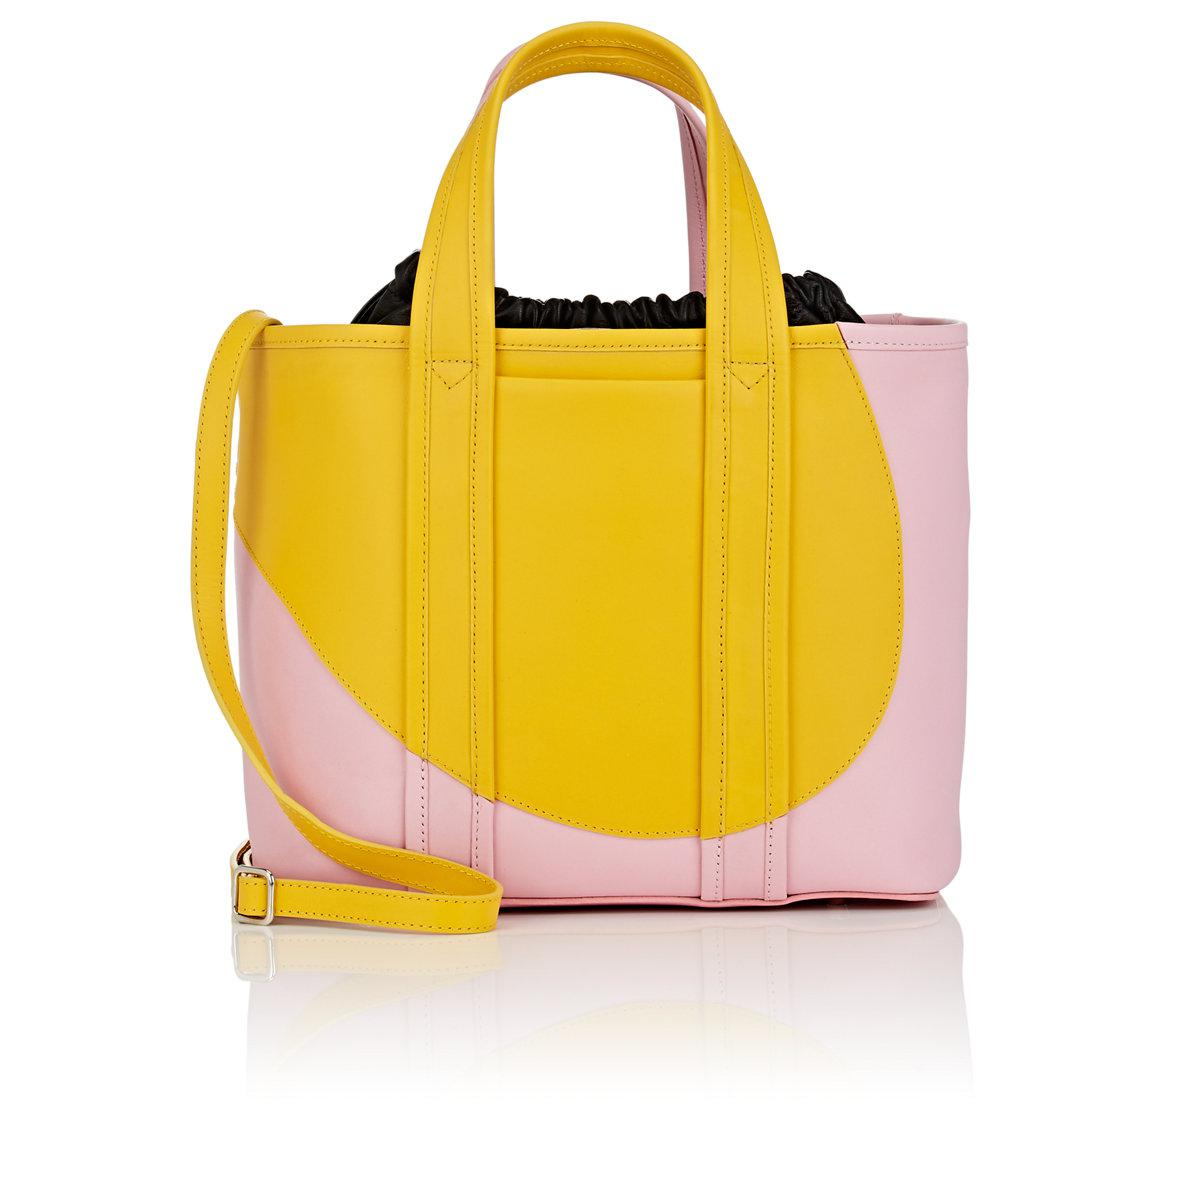 Womens Alpha Leather Tote Bag & Pouch Pierre Hardy Latest Cheap Price Geniue Stockist Online Best Place Cheap Online Store With Big Discount Shop For Cheap Price 8OzSADR109